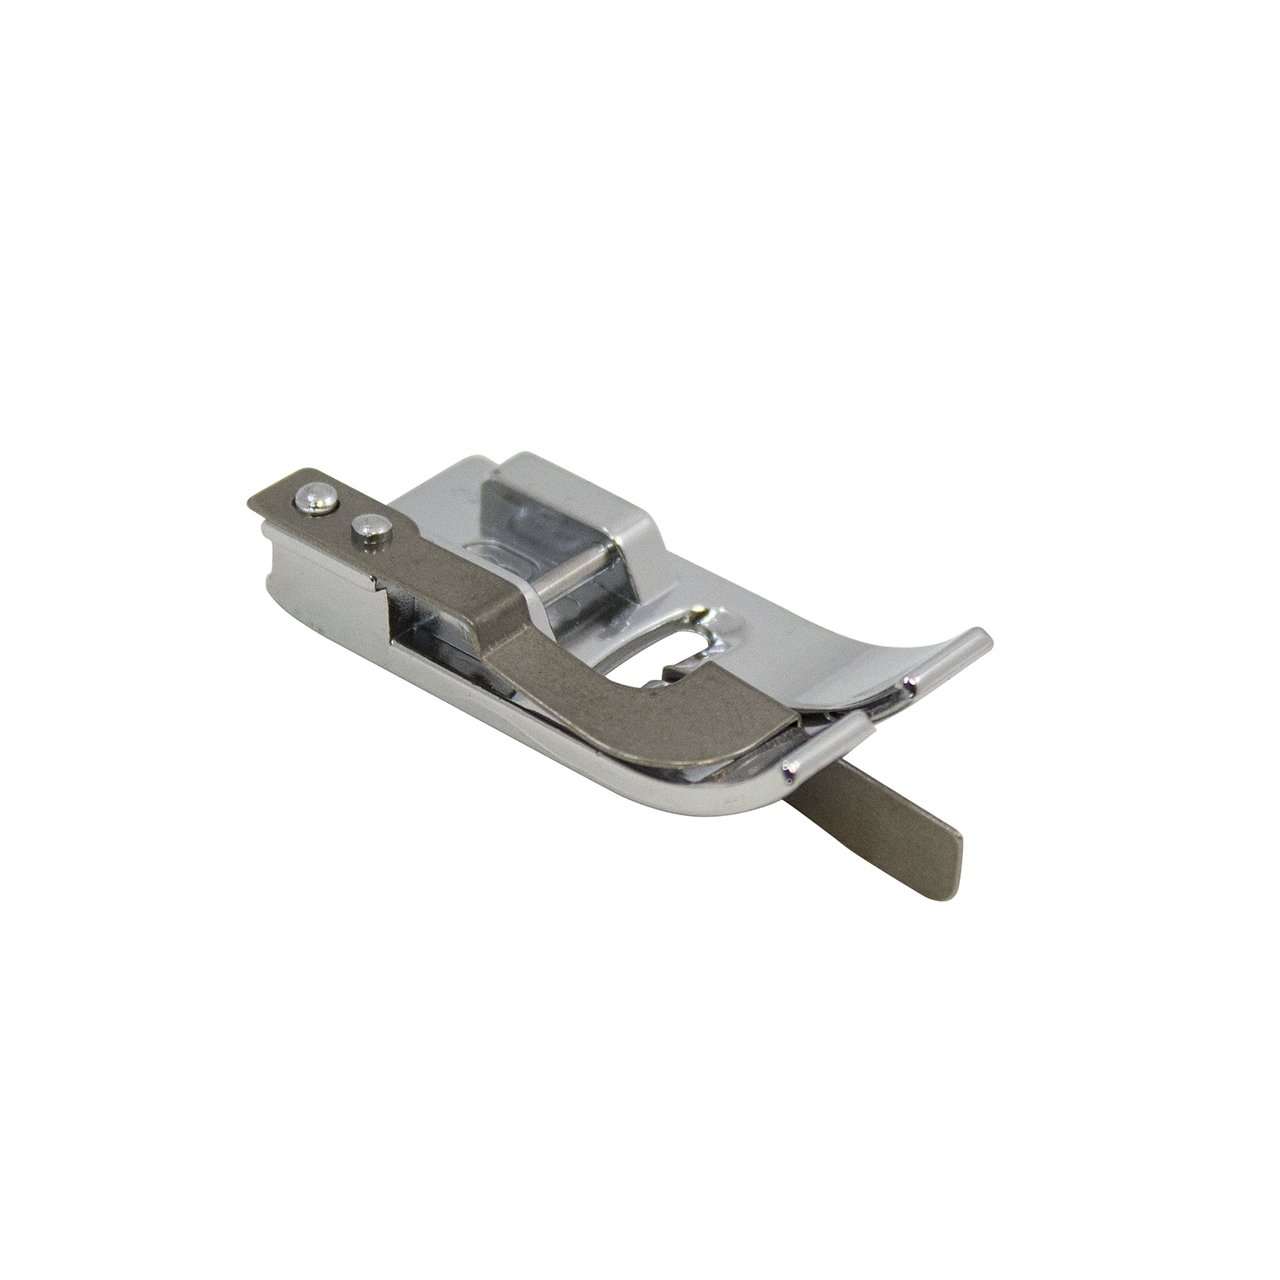 Juki Edge Sewing Presser Foot